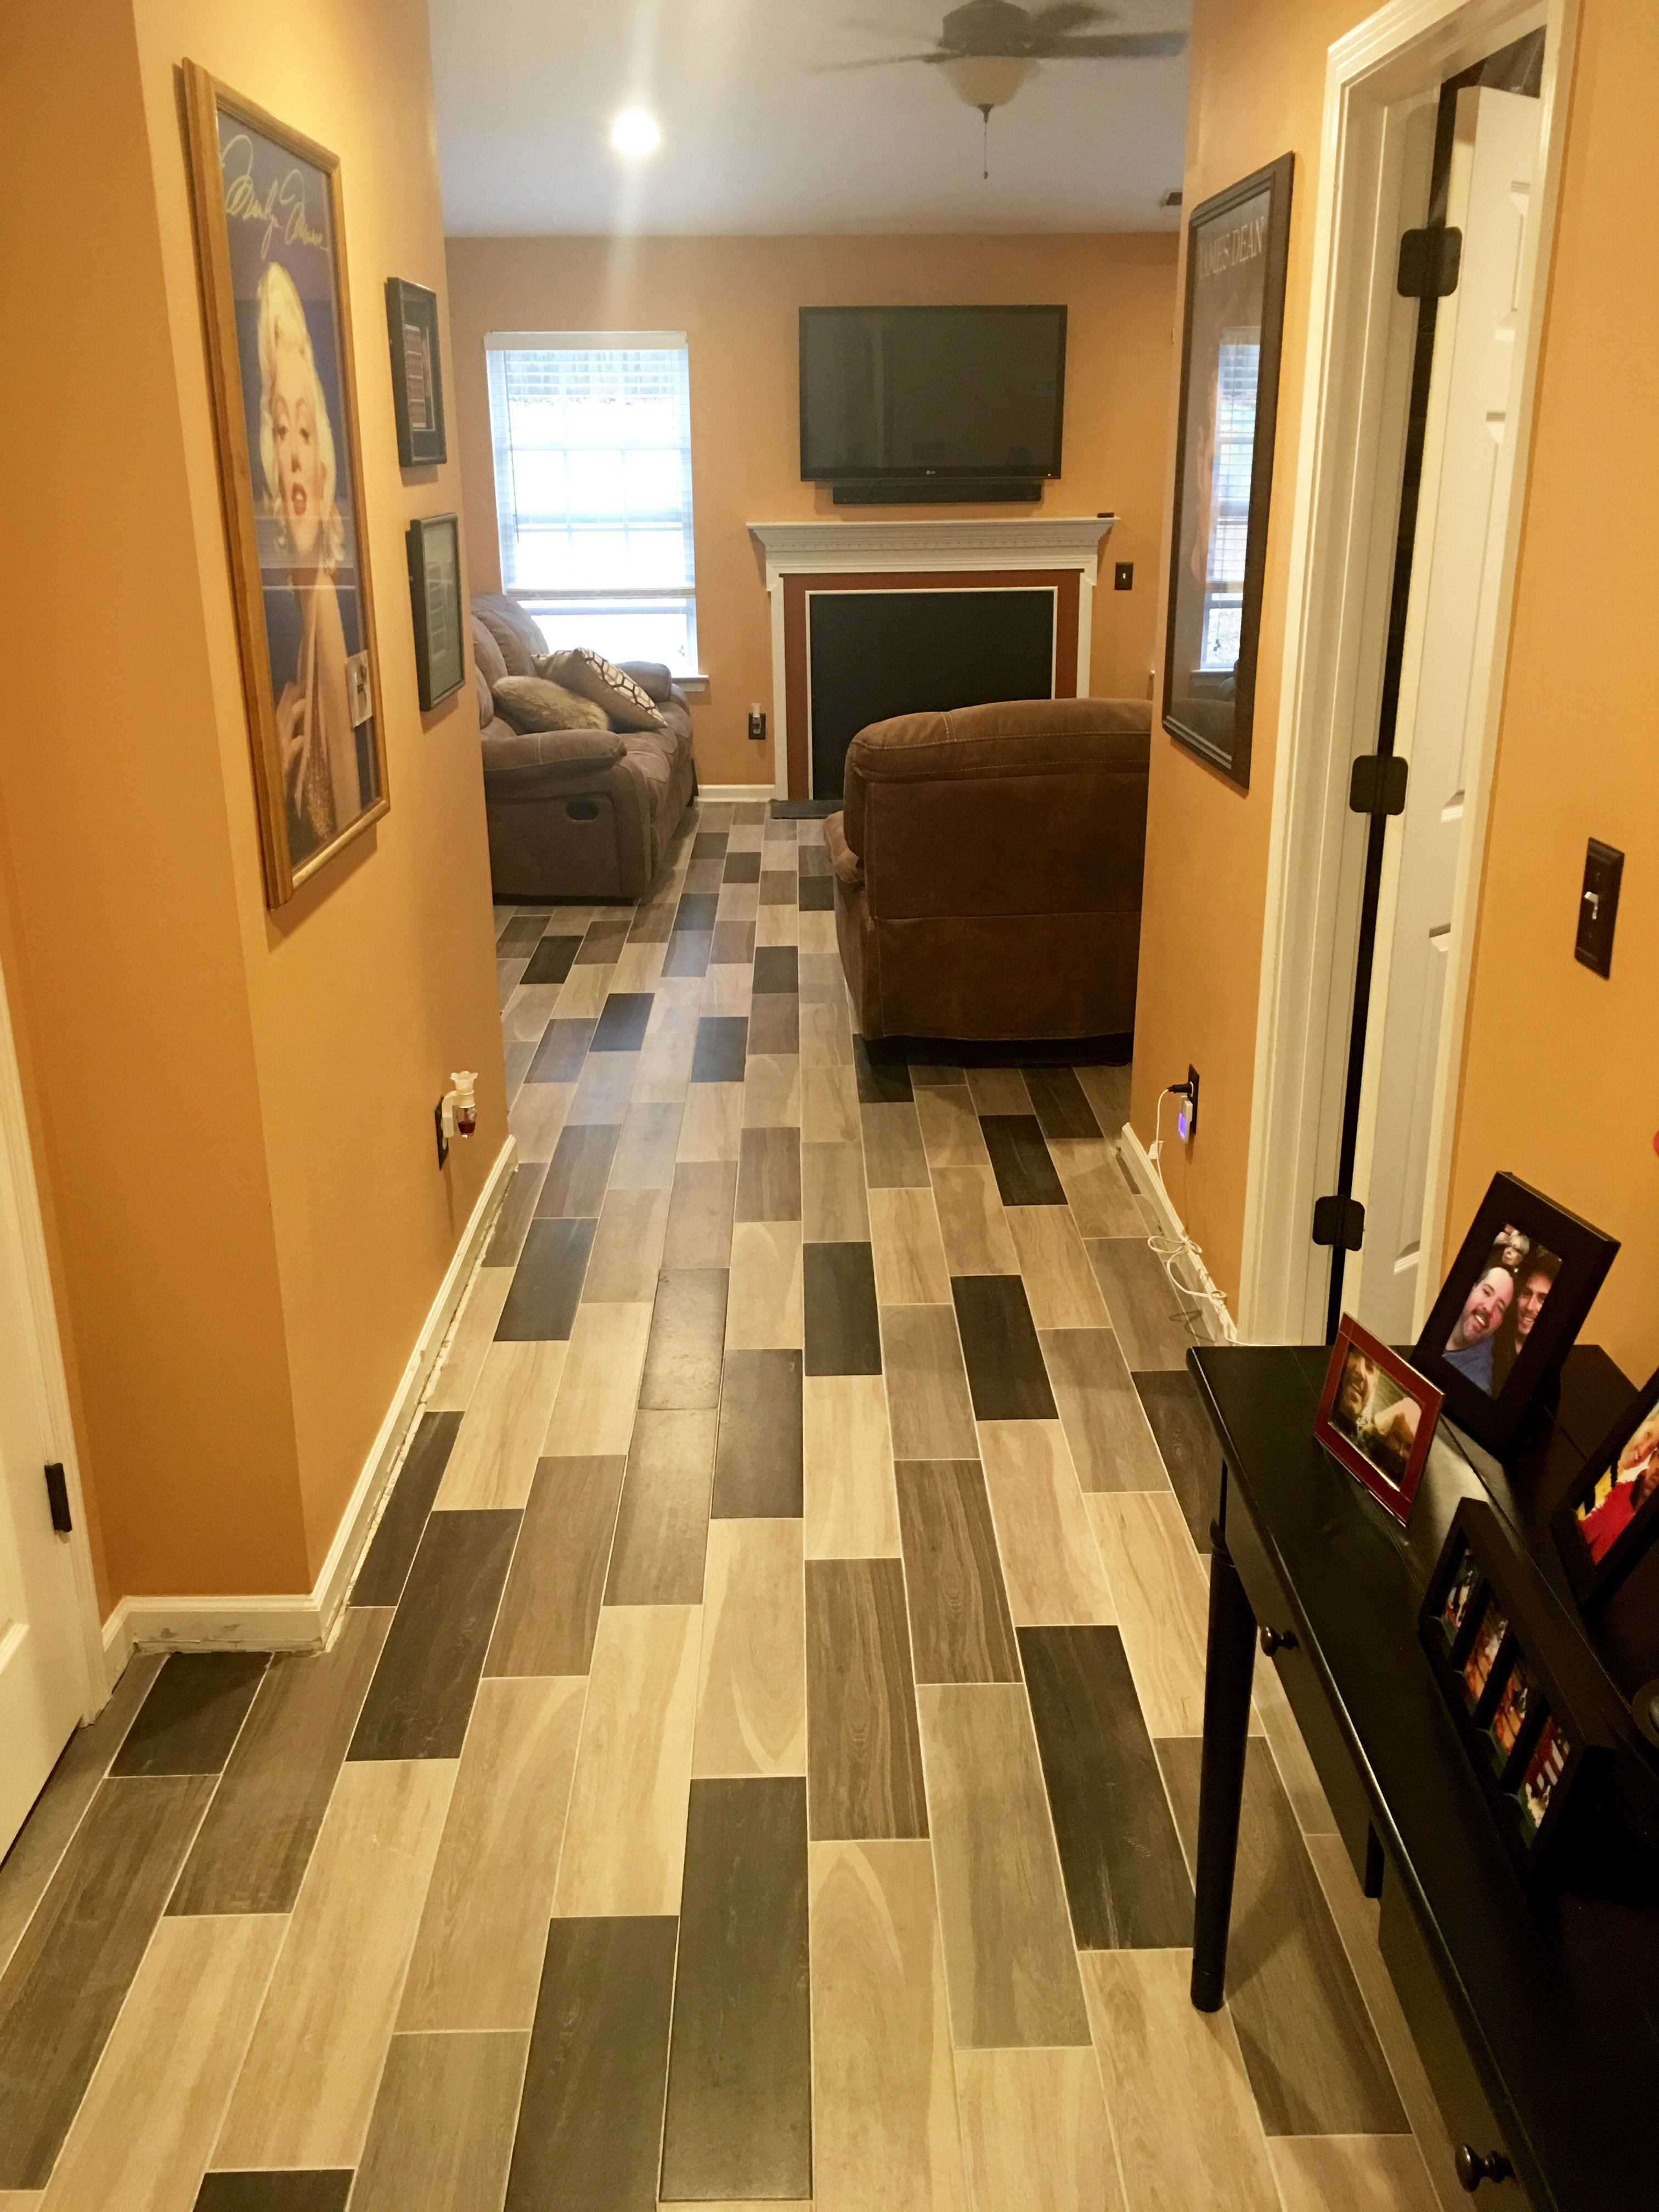 Monthly Photo Contest Flooring Renovation Sent In By Tony S Of